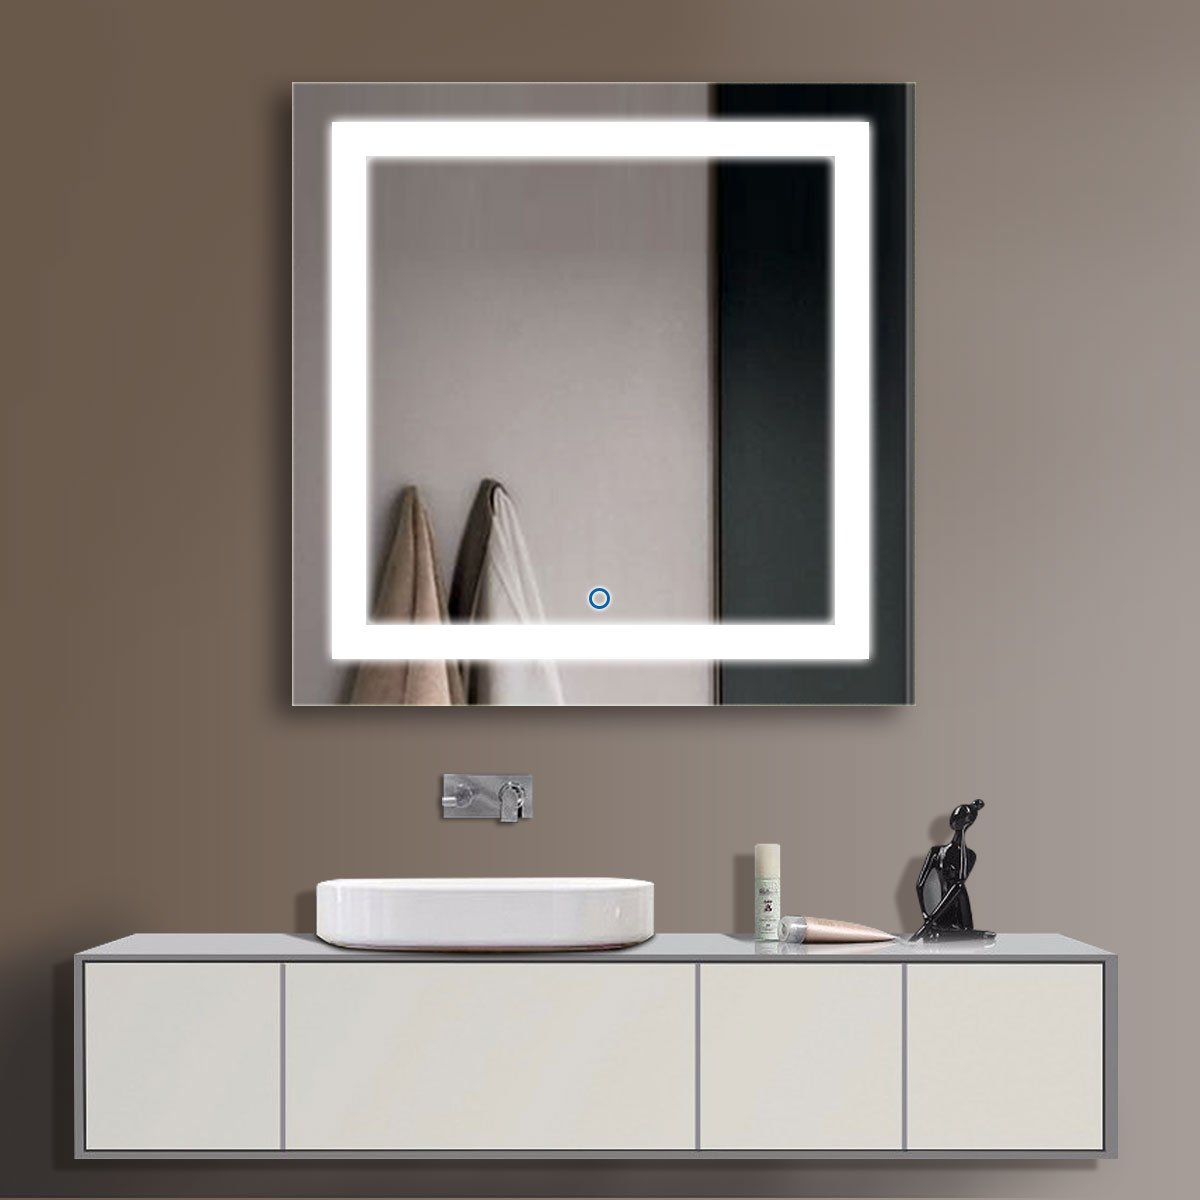 BHBL 36 x 36 In LED Bathroom Silvered Mirror with Touch Button (DK-OD-C-CK168-E)